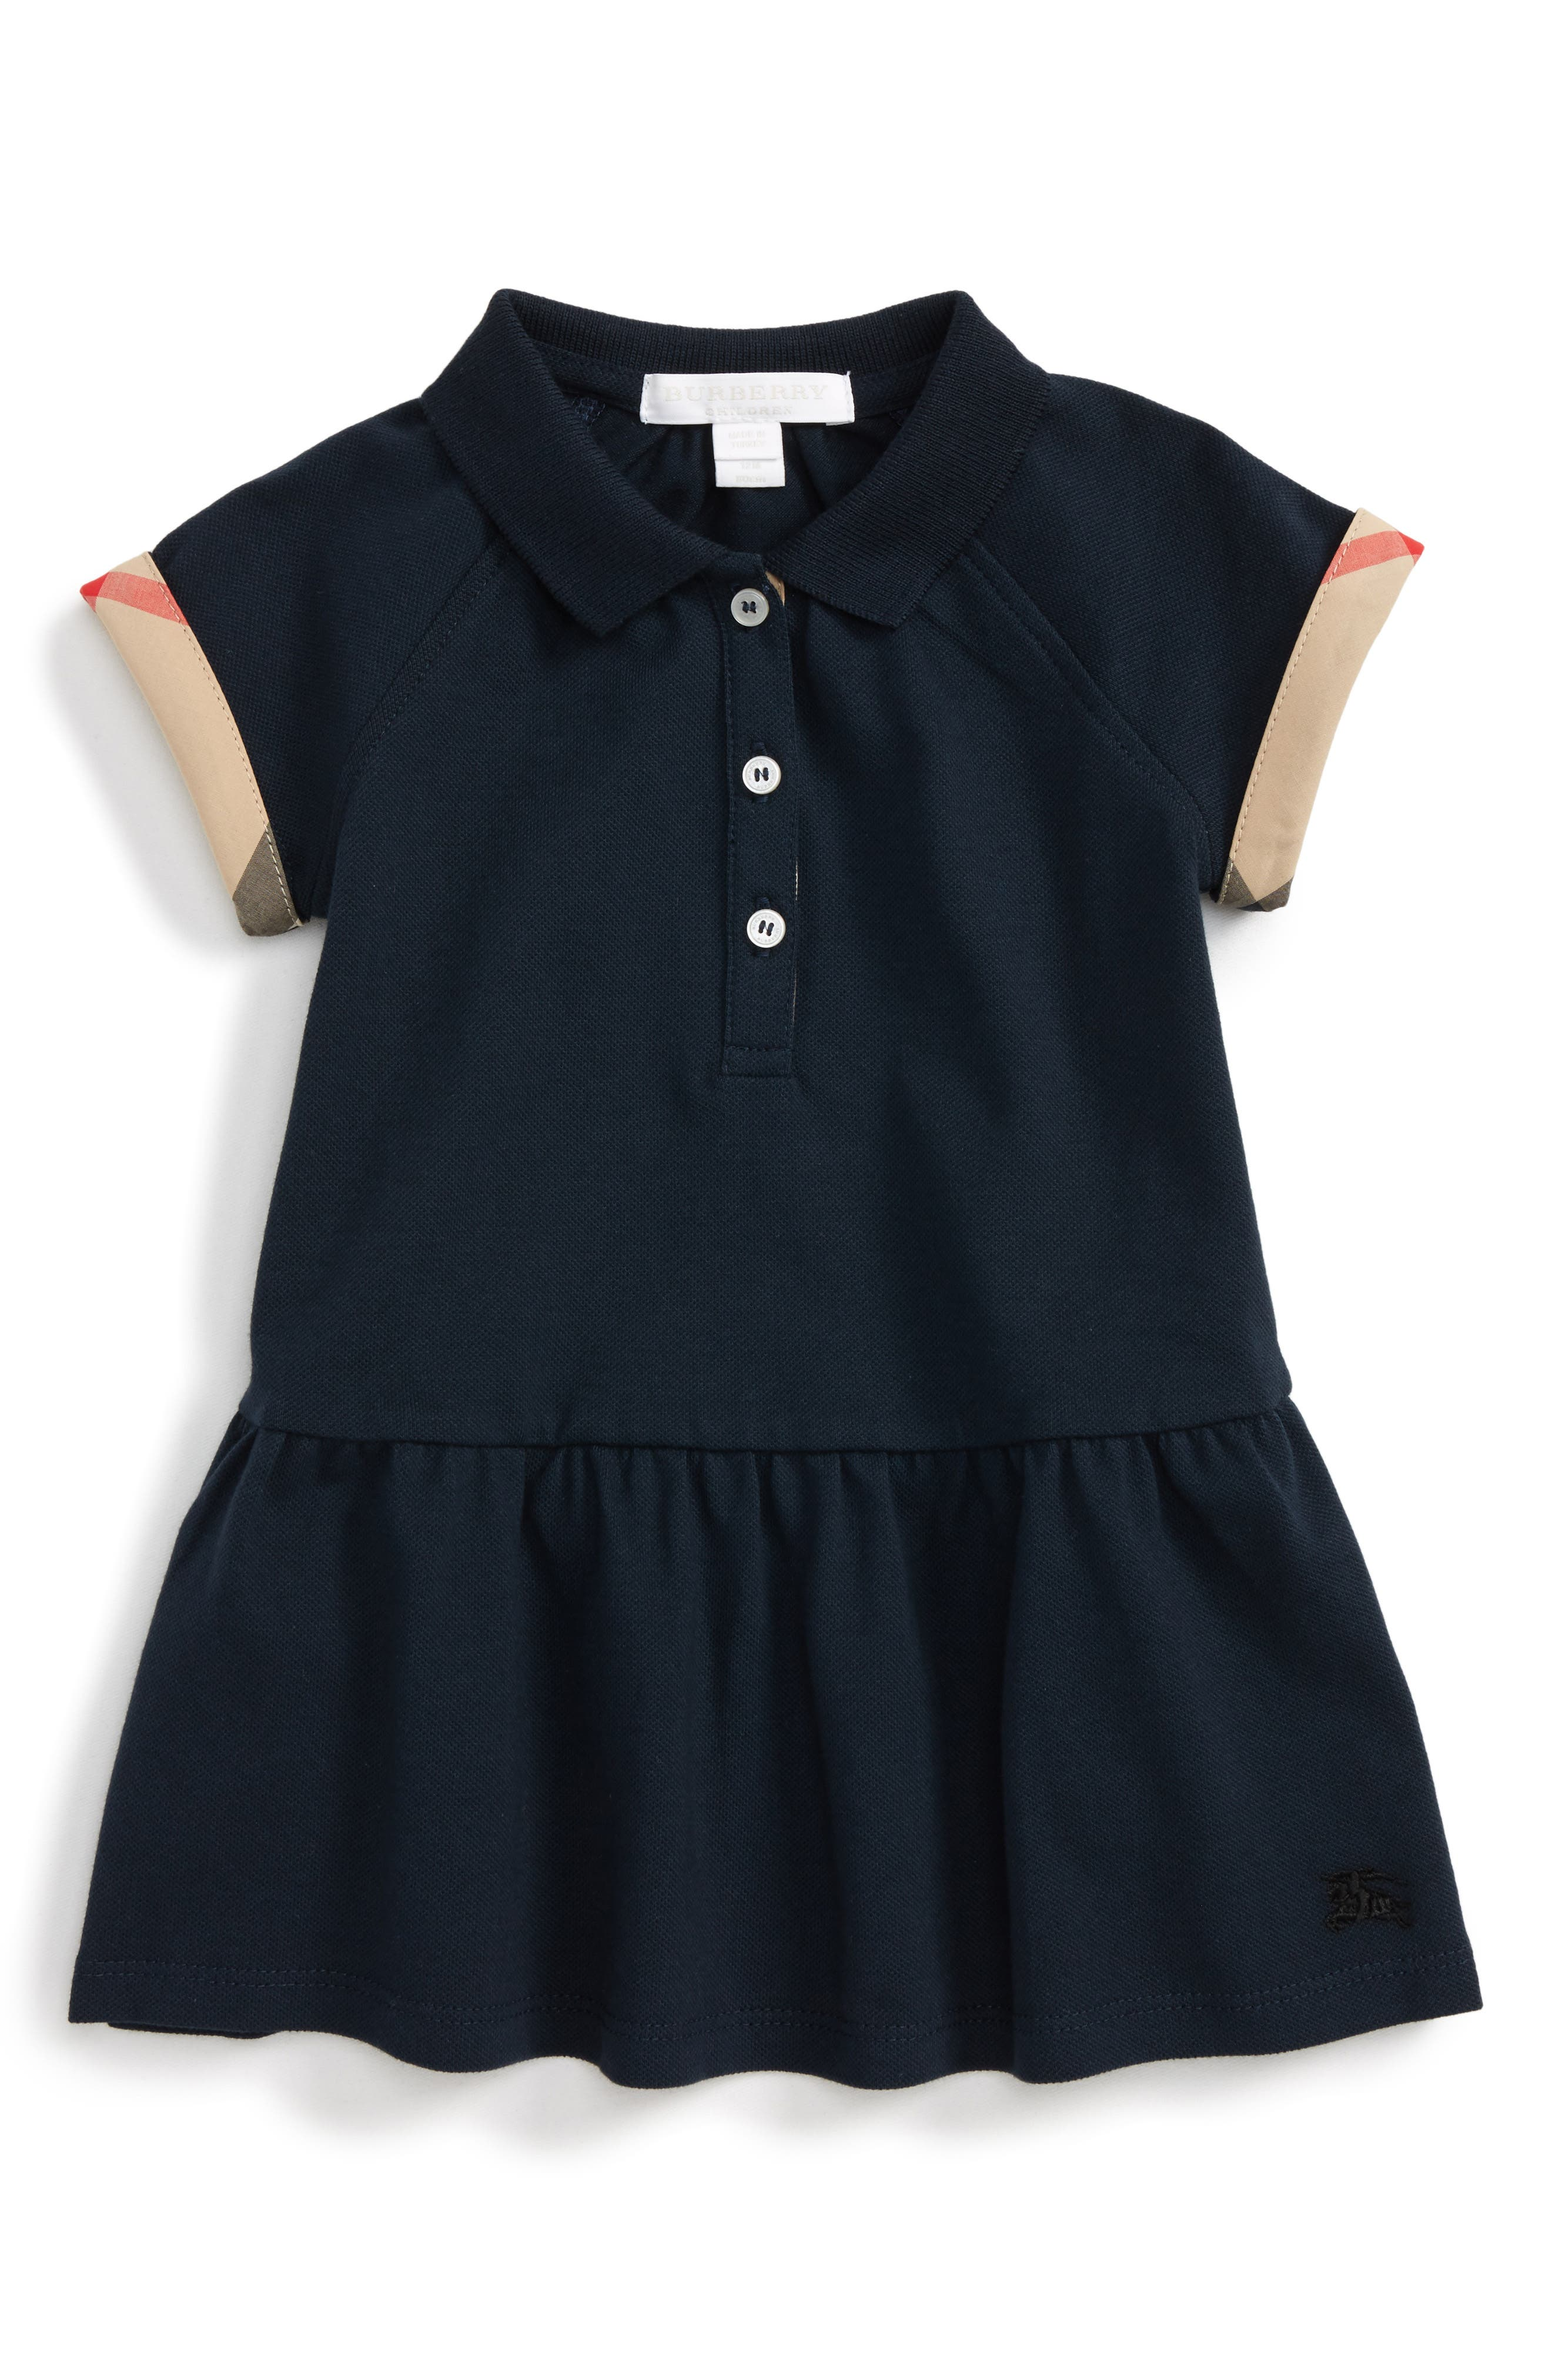 Burberry 'Mini Cali' Polo Dress (Baby Girls)